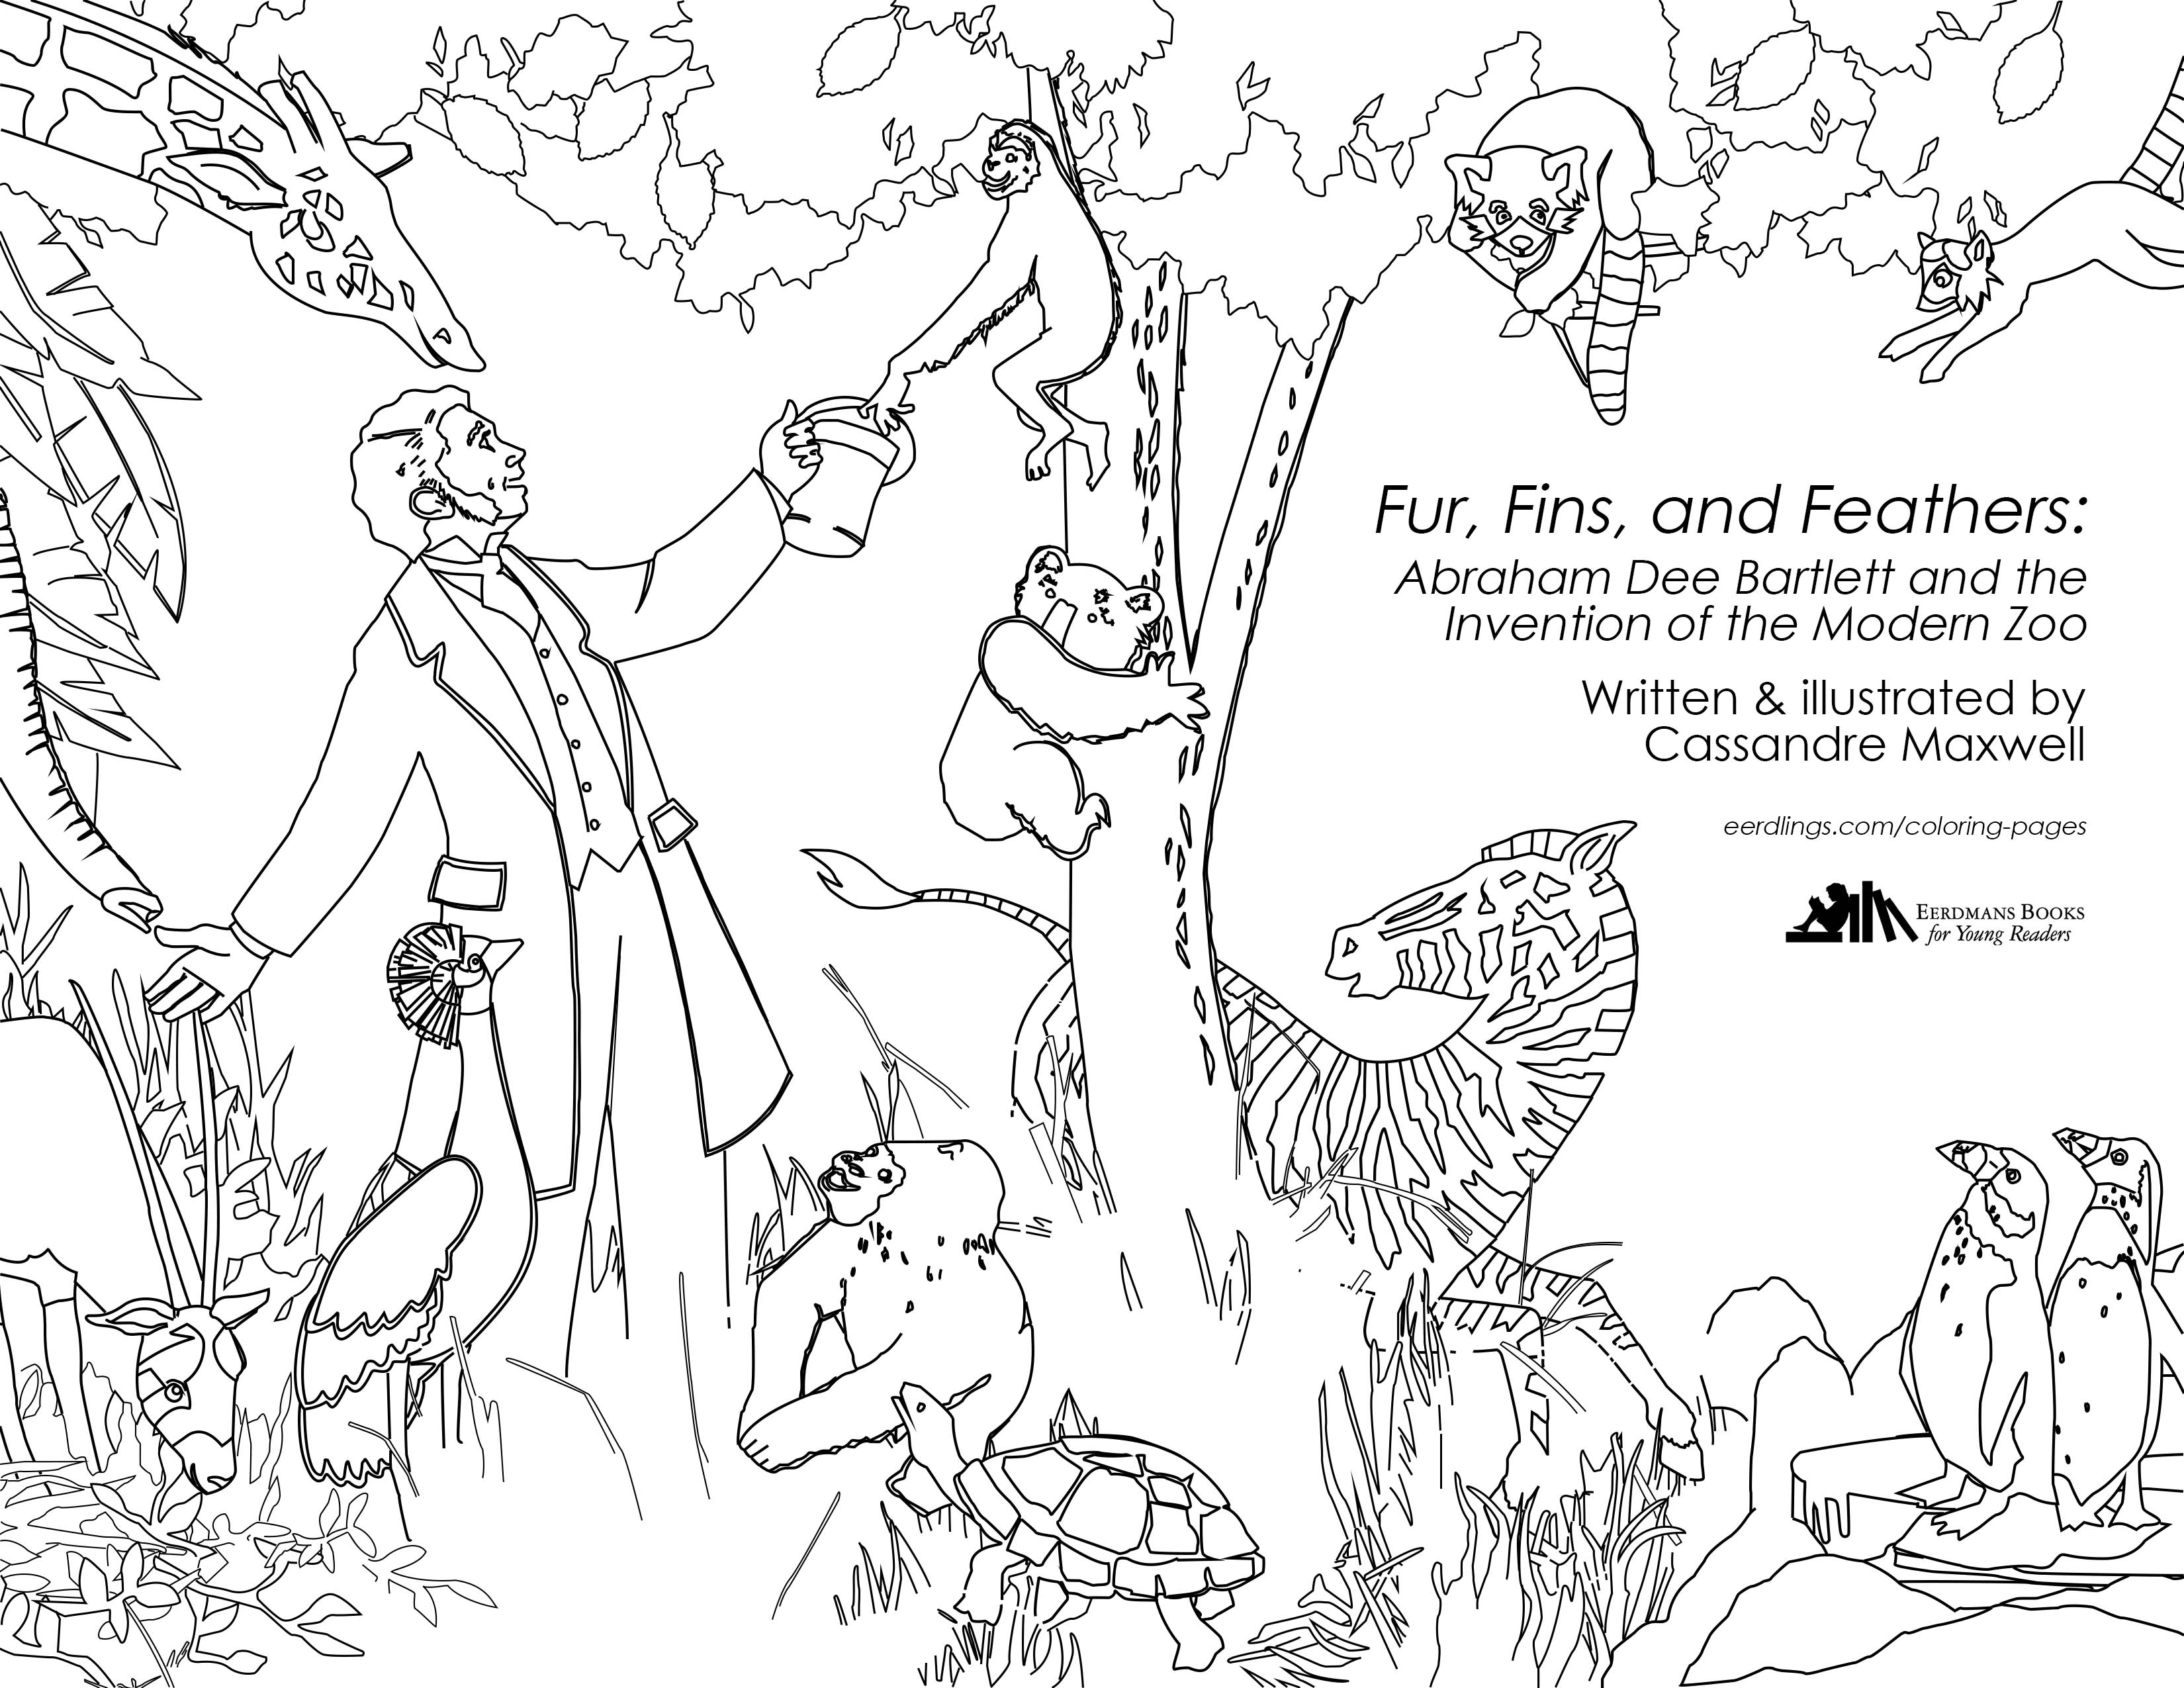 New Coloring Page For Fur Fins And Feathers